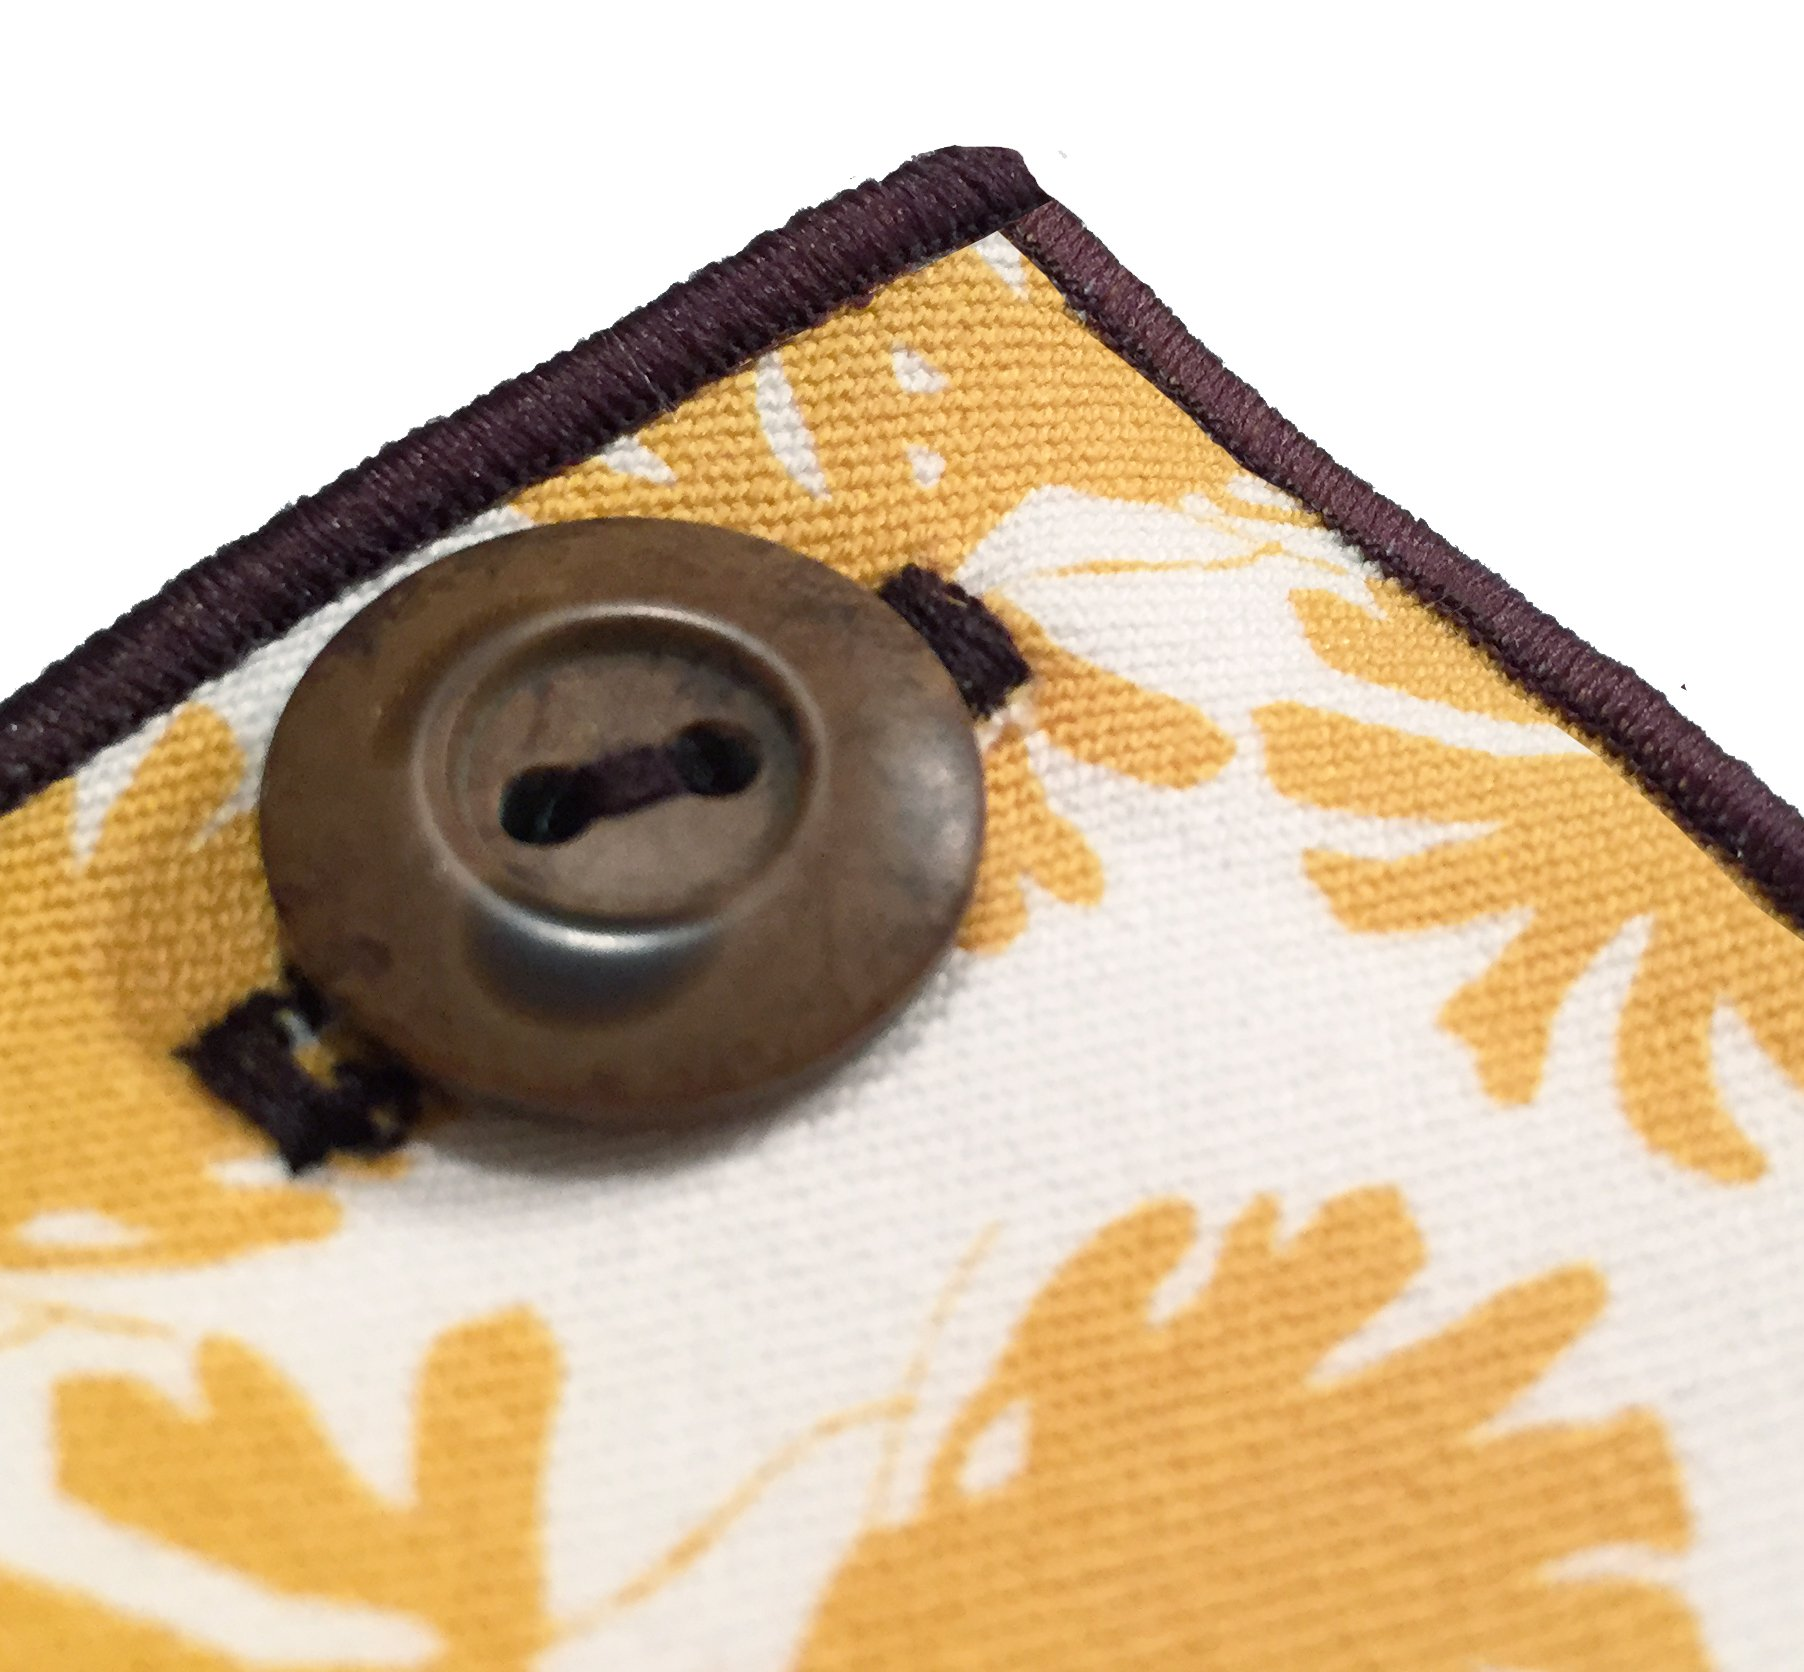 Yellow & White Print with Brown Button Men's Pocket Square by The Detailed Male by The Detailed Male (Image #2)